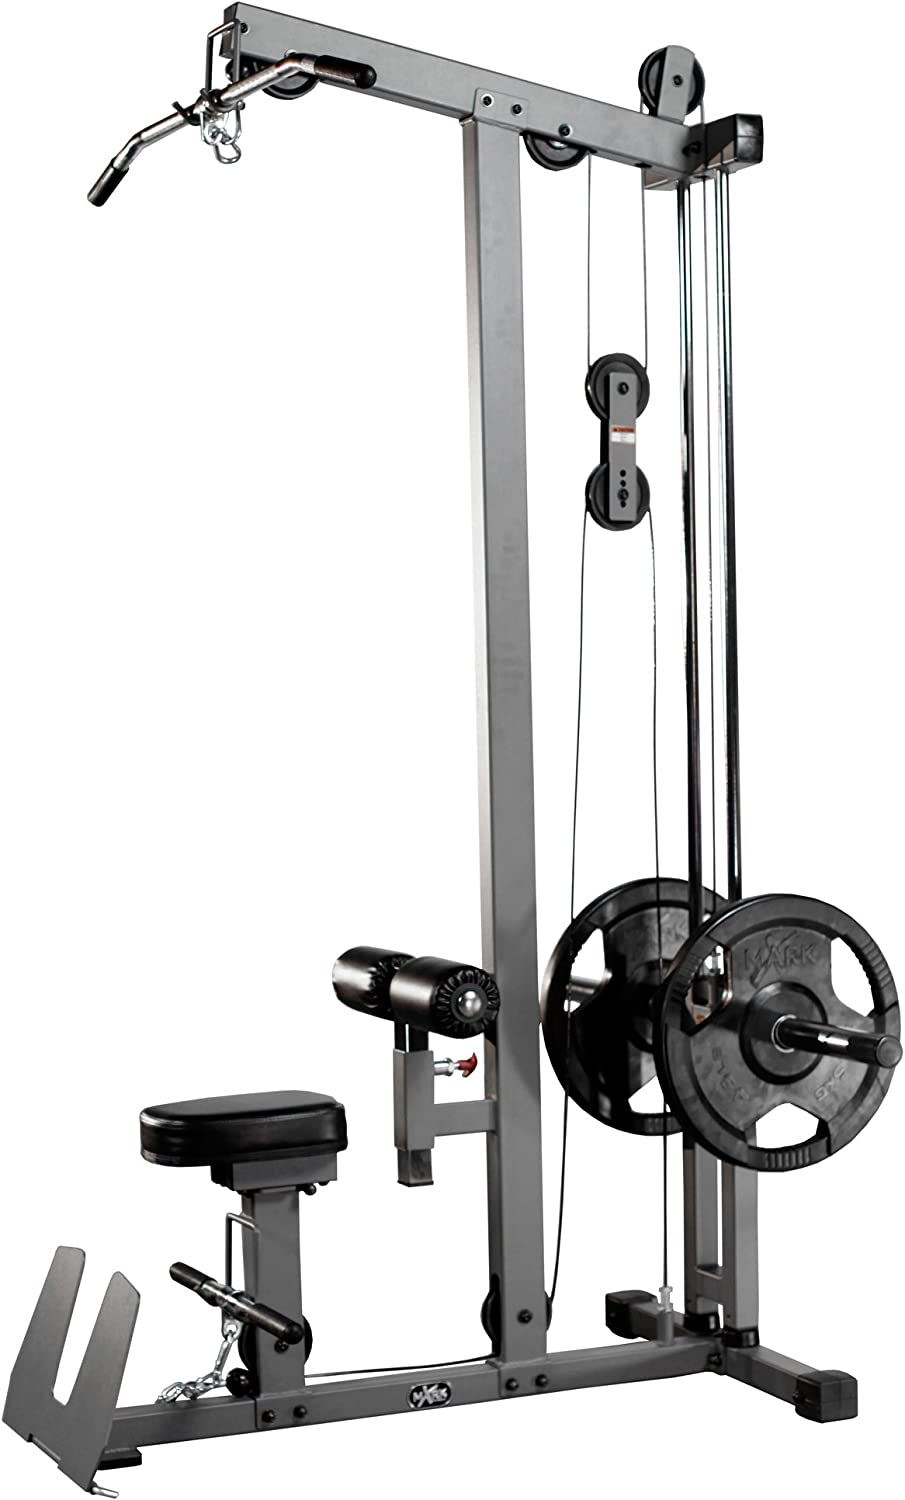 XMark Heavy Duty LAT Pulldown Import and Dallas Mall Hig Cable Row Low Machine with